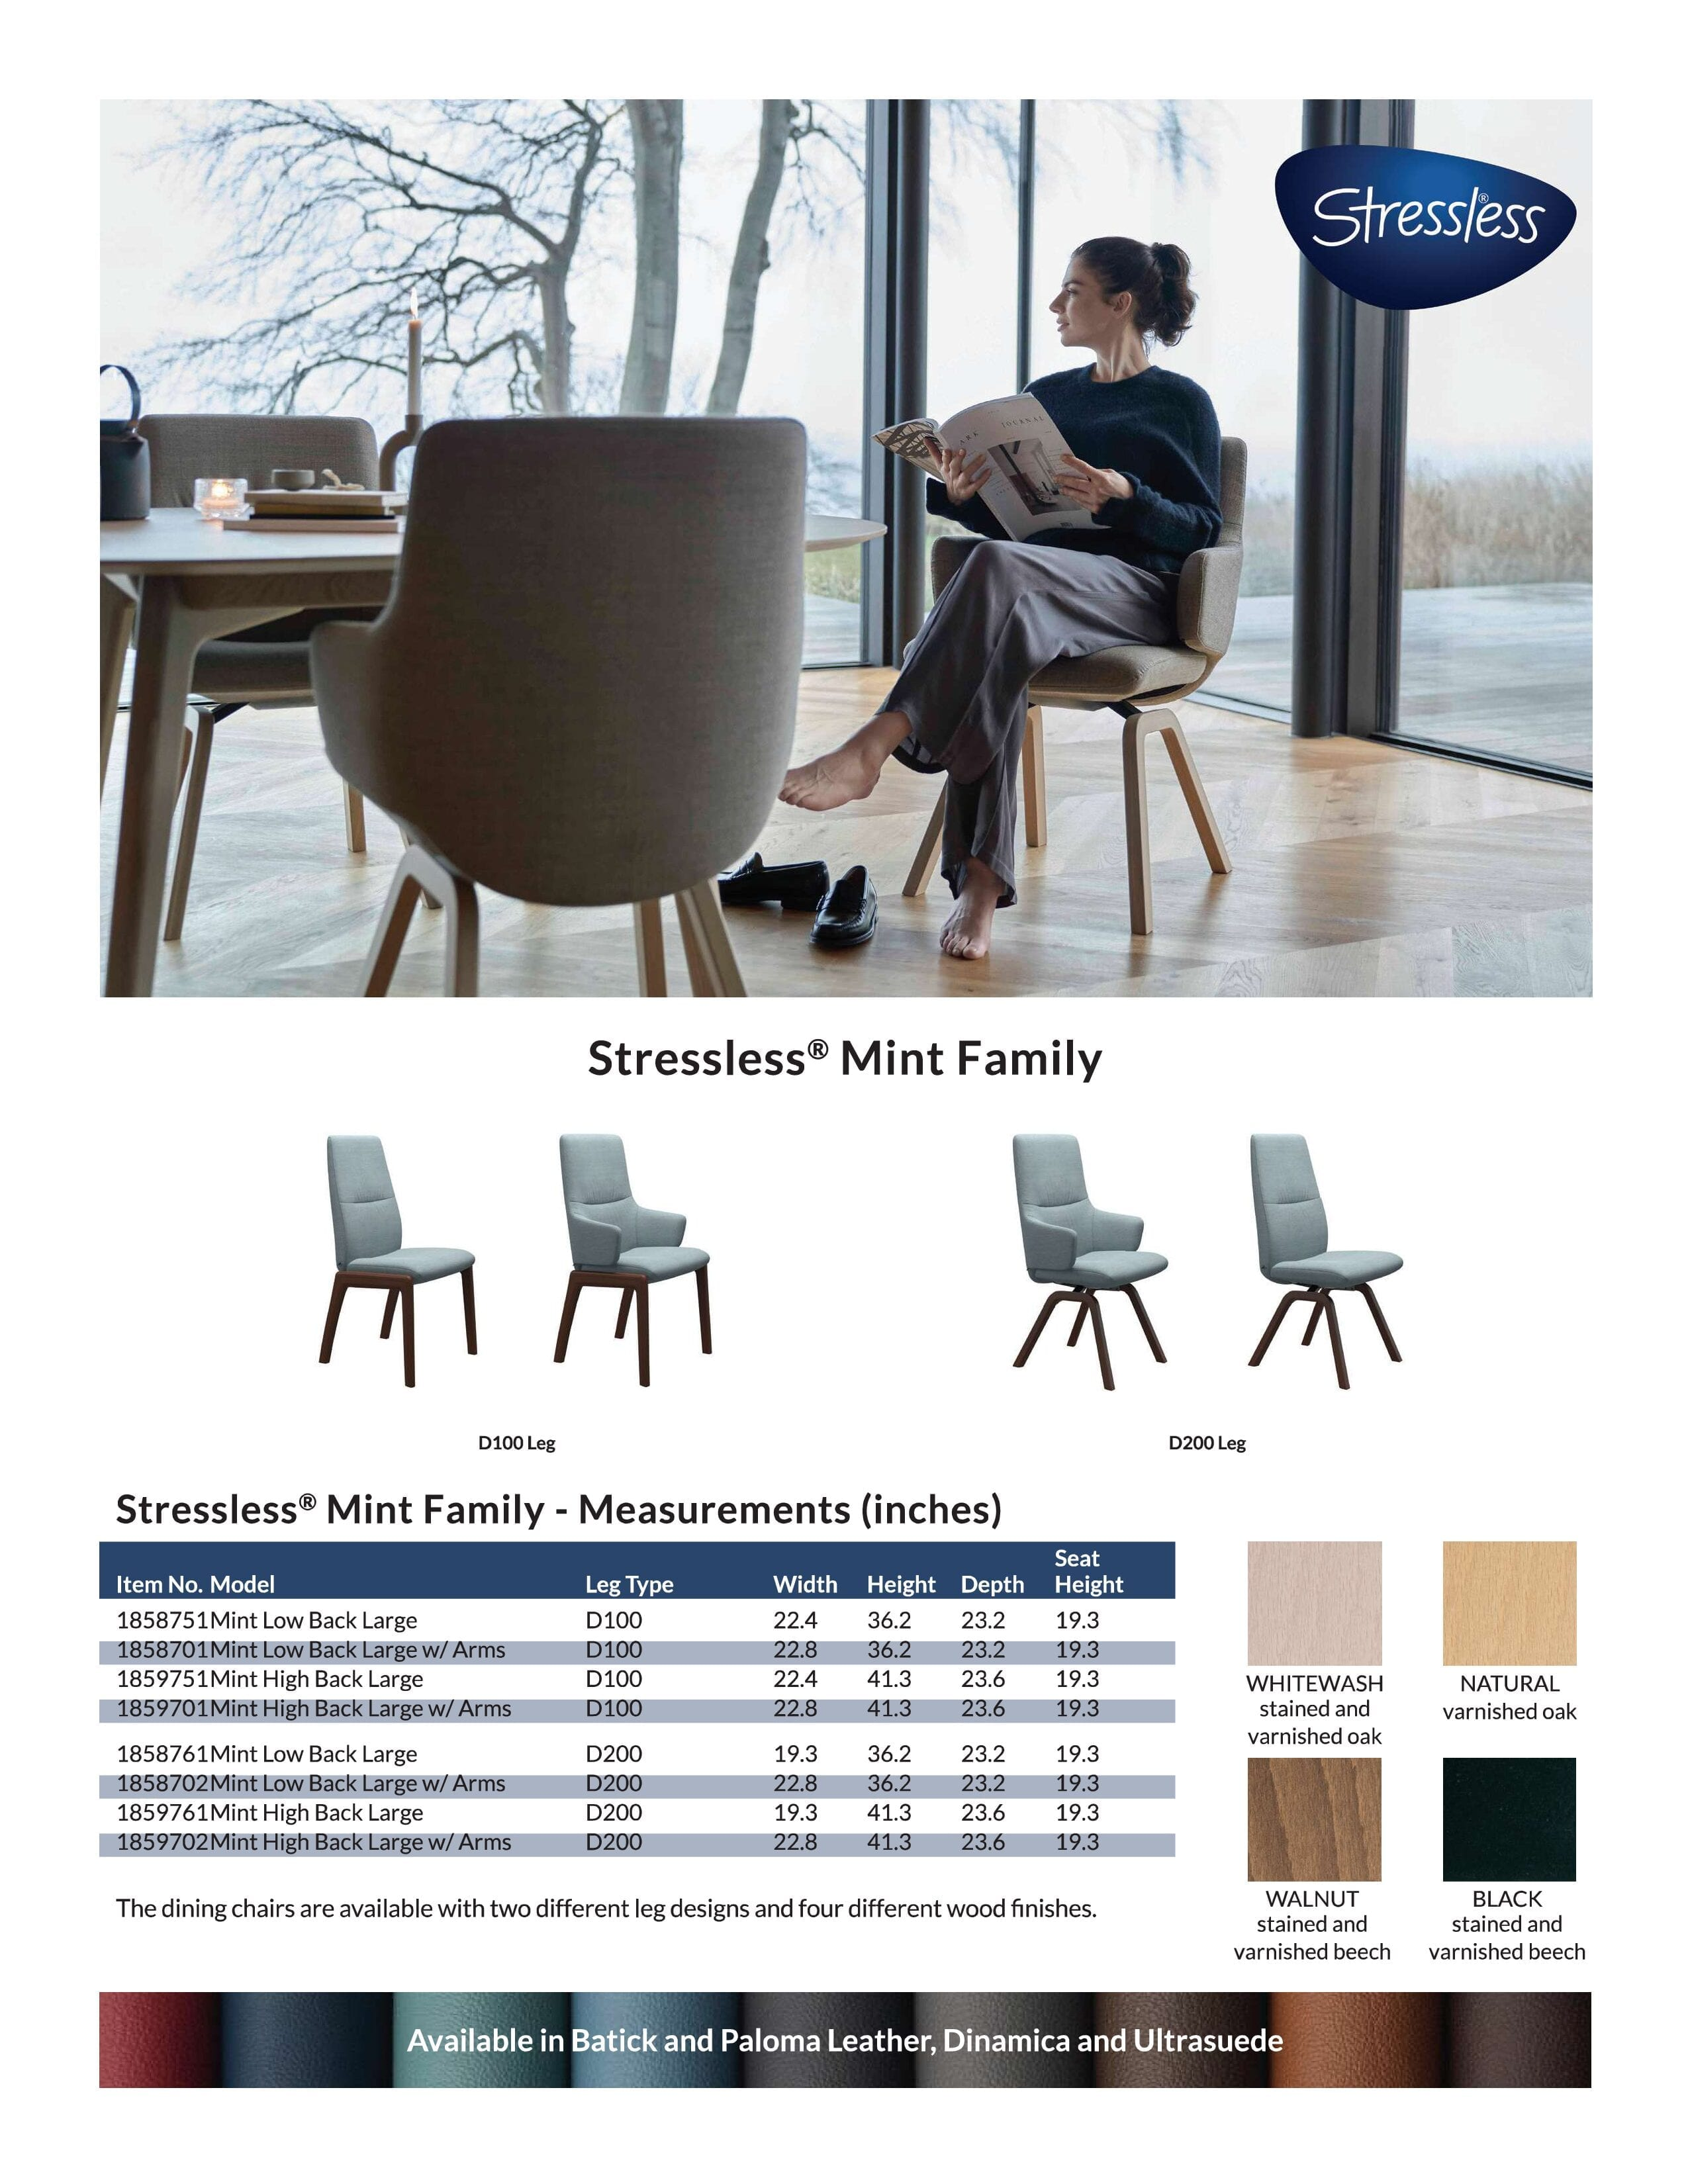 Stressless Mint Family Product Sheet